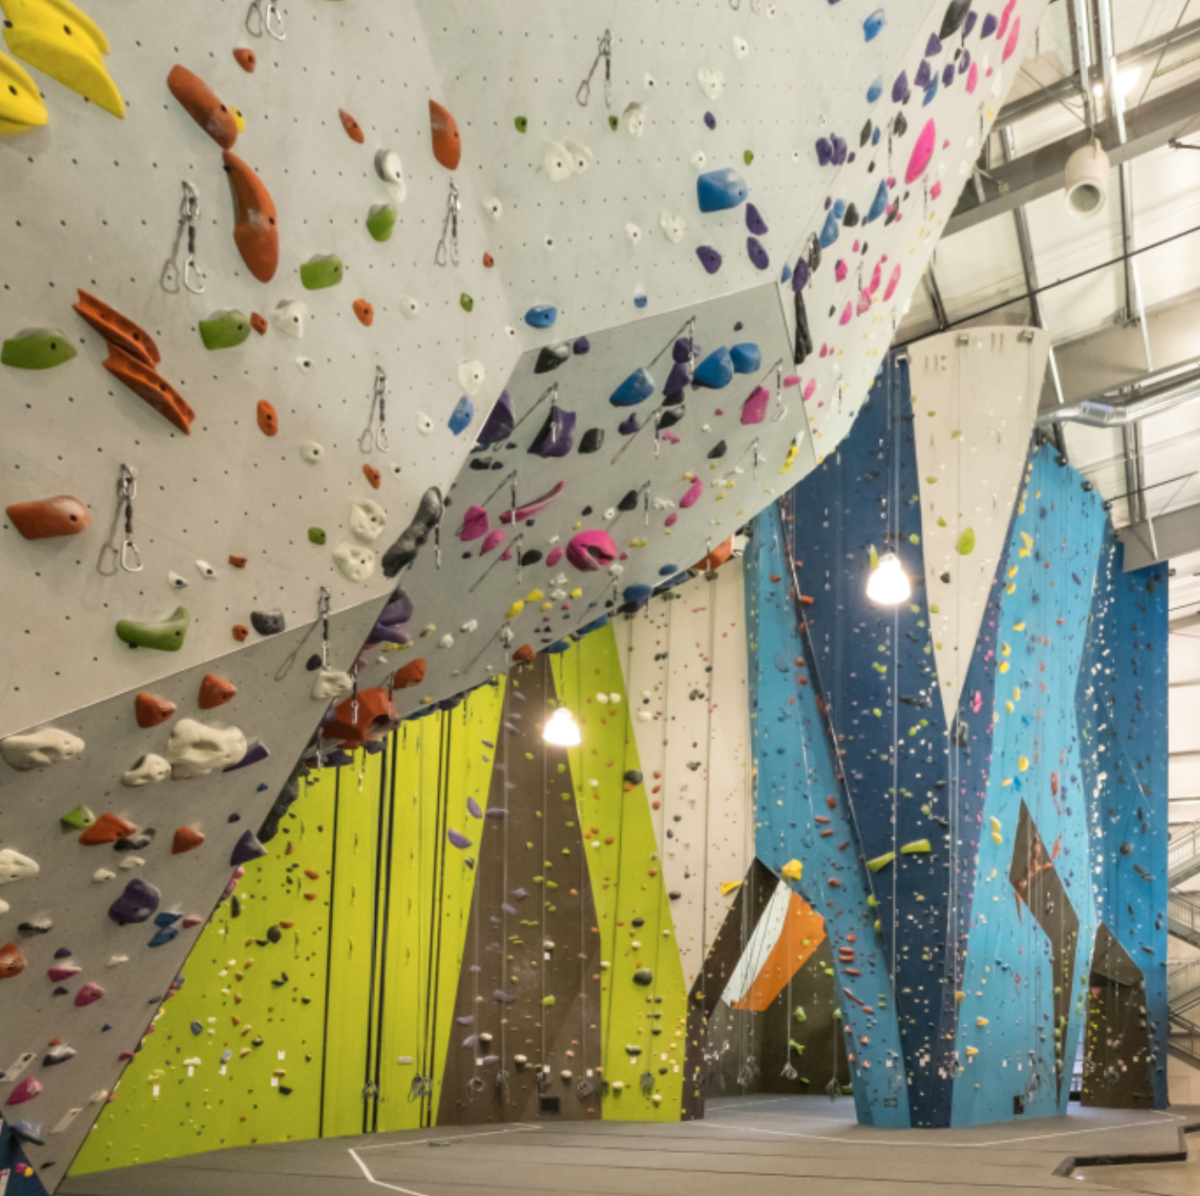 An example of what a rock climbing gym looks like. Notice all the different kinds of holds and how the walls are shaped to resemble rocks and cliffs outside.